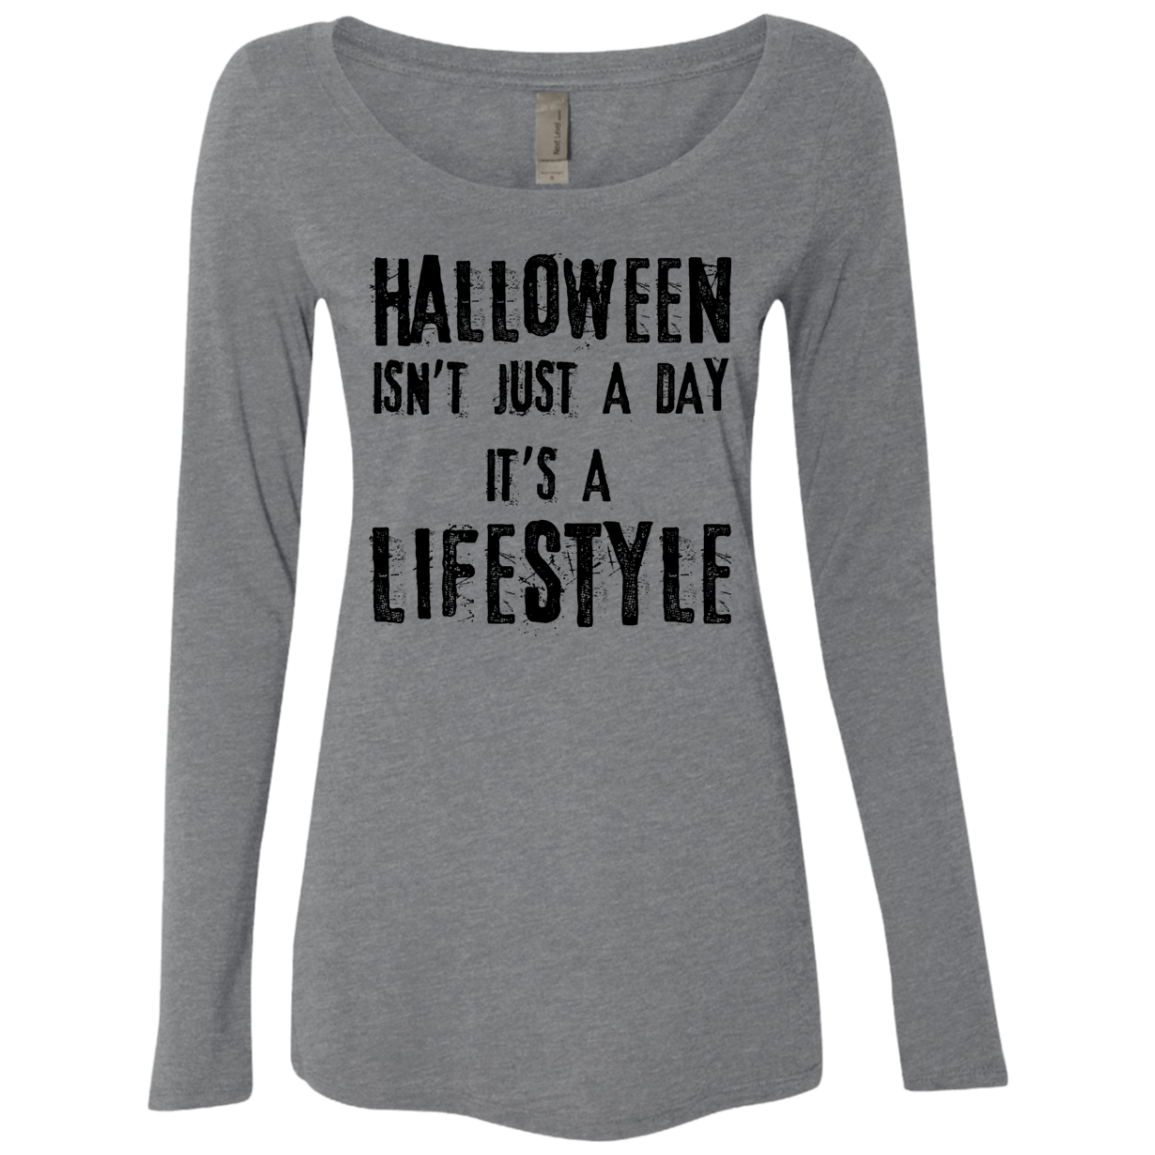 Halloween Isn't Just A Day It's A Lifestyle Women's Long Sleeve Tee